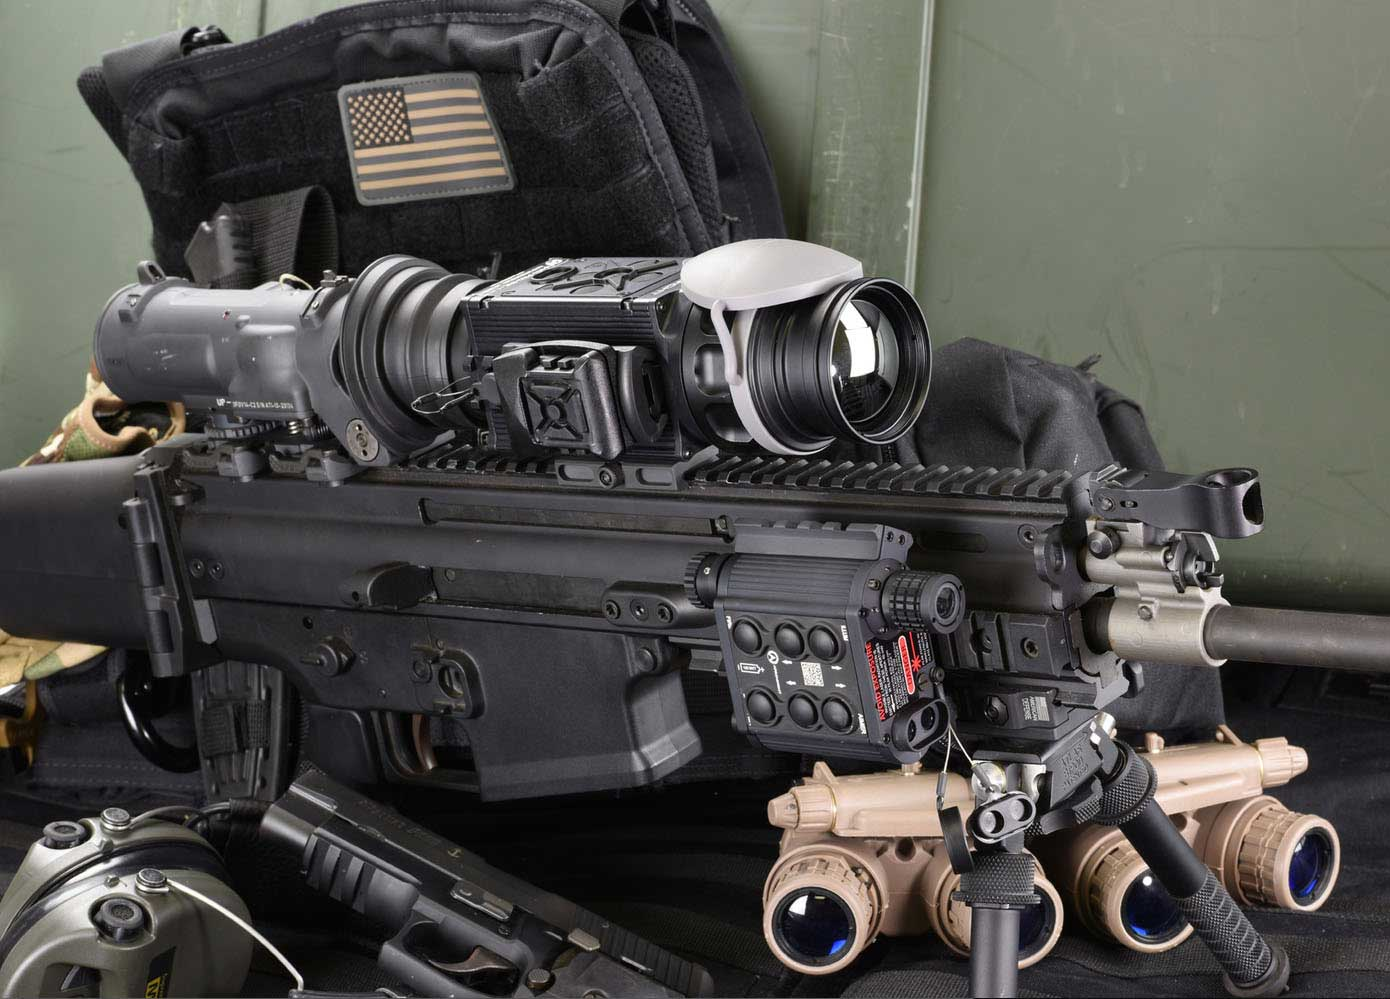 X39 Clip On FLIR Thermal Imaging Rifle Sight mounted on a rifle. Shown with Night vision goggles and TMSLS laser rail system (not included).